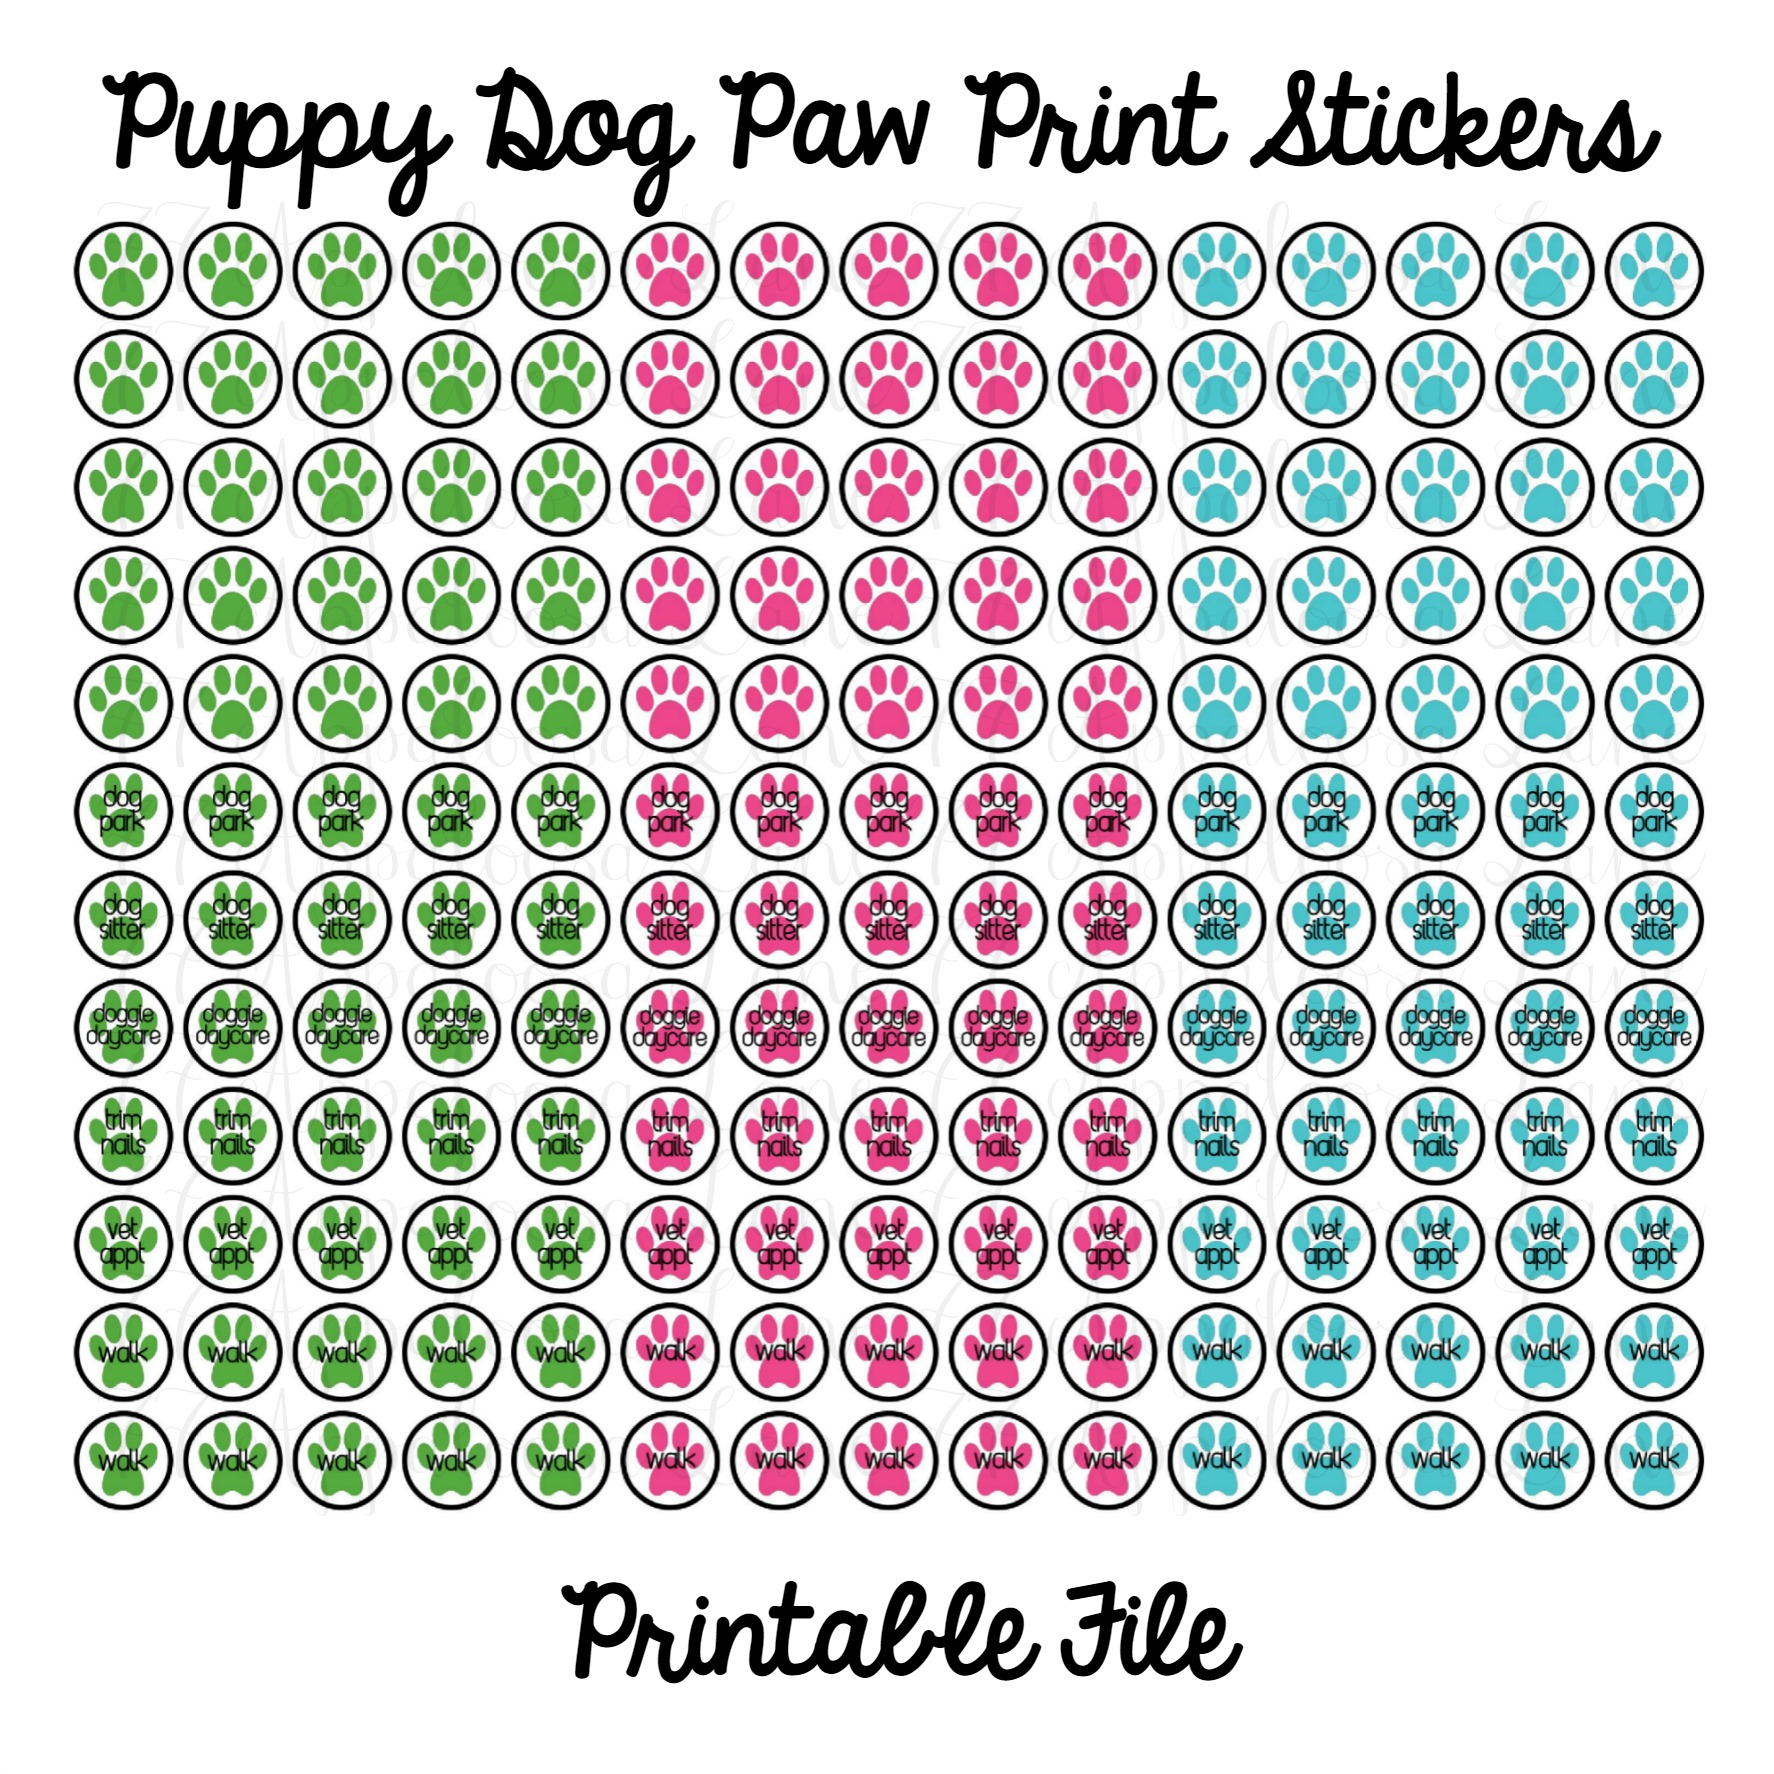 Puppy dog paw print stickers printable digital download thumbnail 3